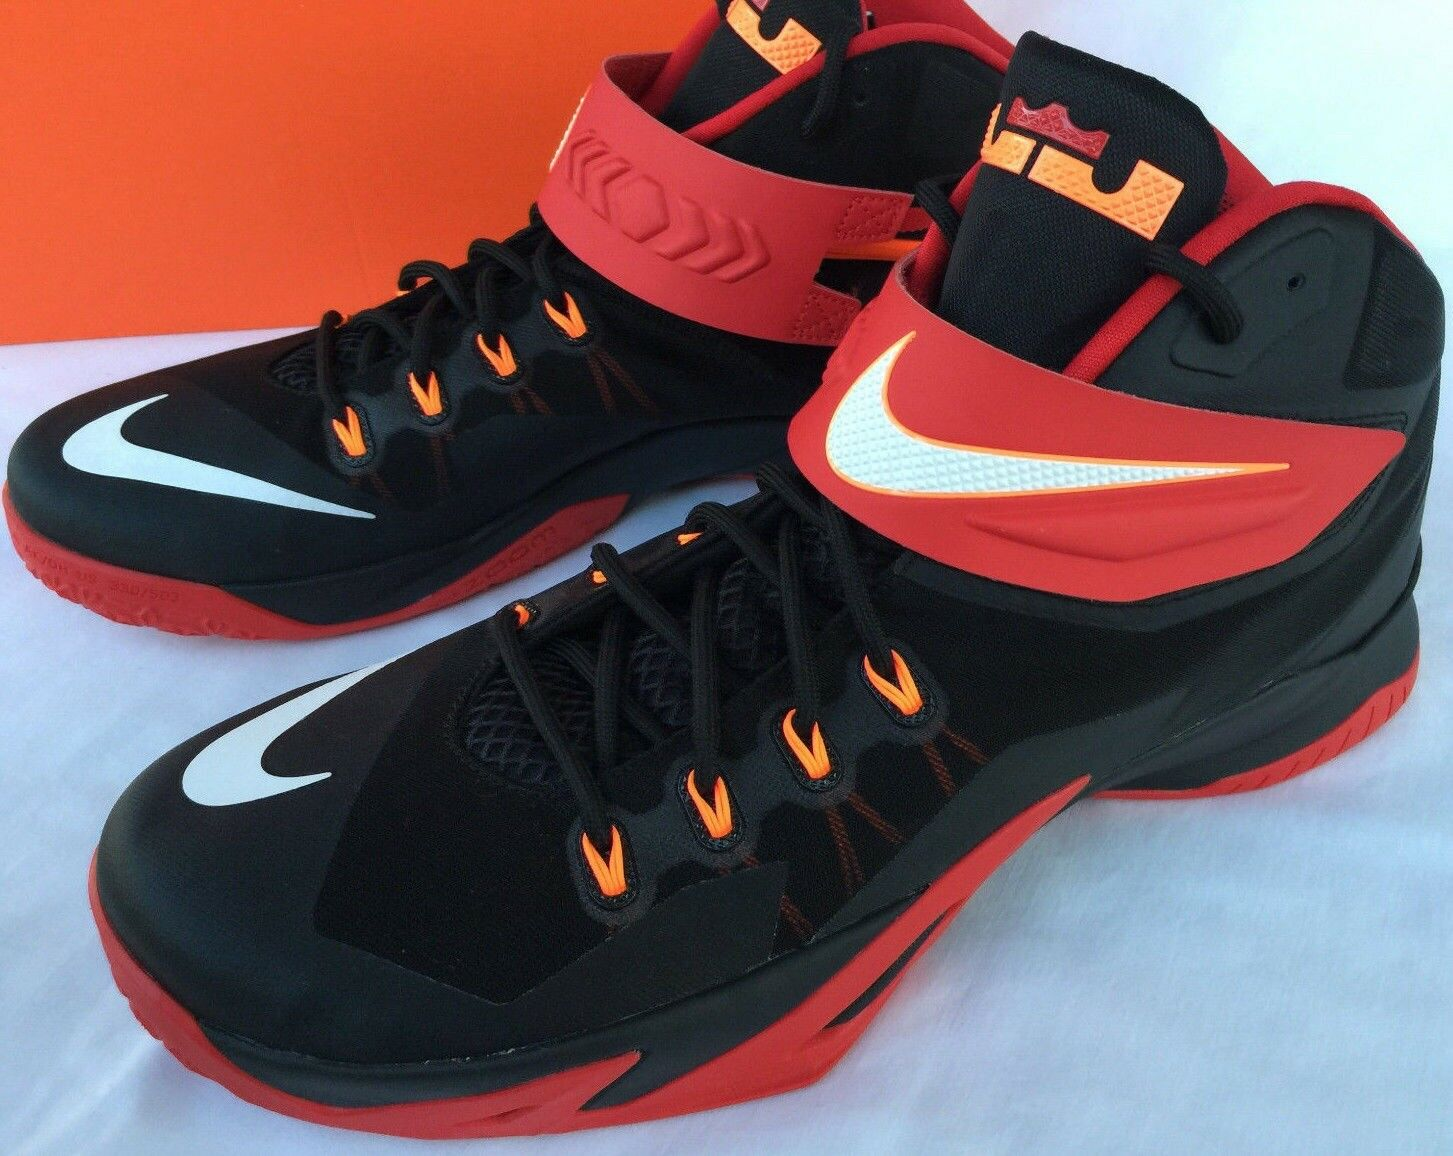 Shoes Men lebron soldiers 8 size 11 KD 7 size 12 and under armor size 12